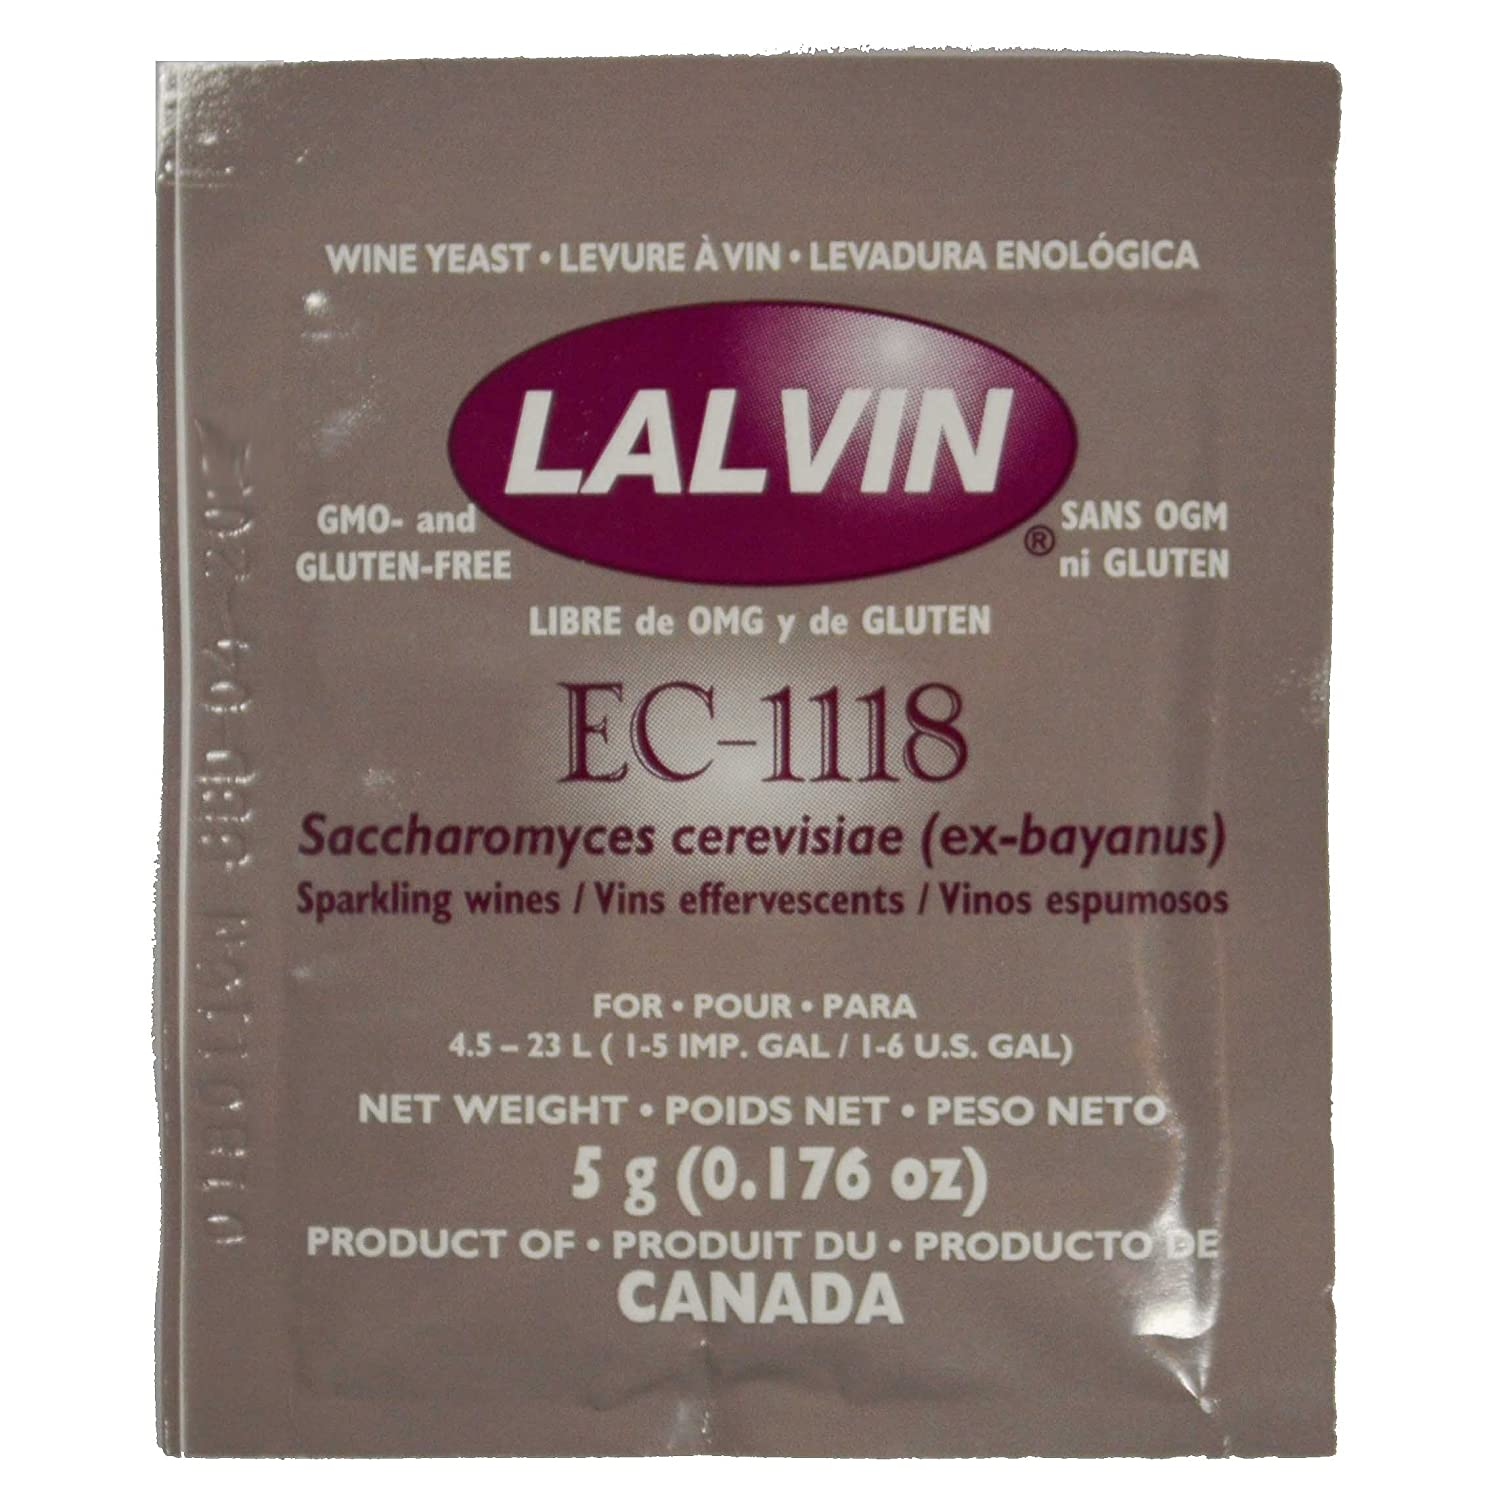 Amazon.com: Lalvin EC-1118 Yeast by Lallemand Inc: Industrial & Scientific